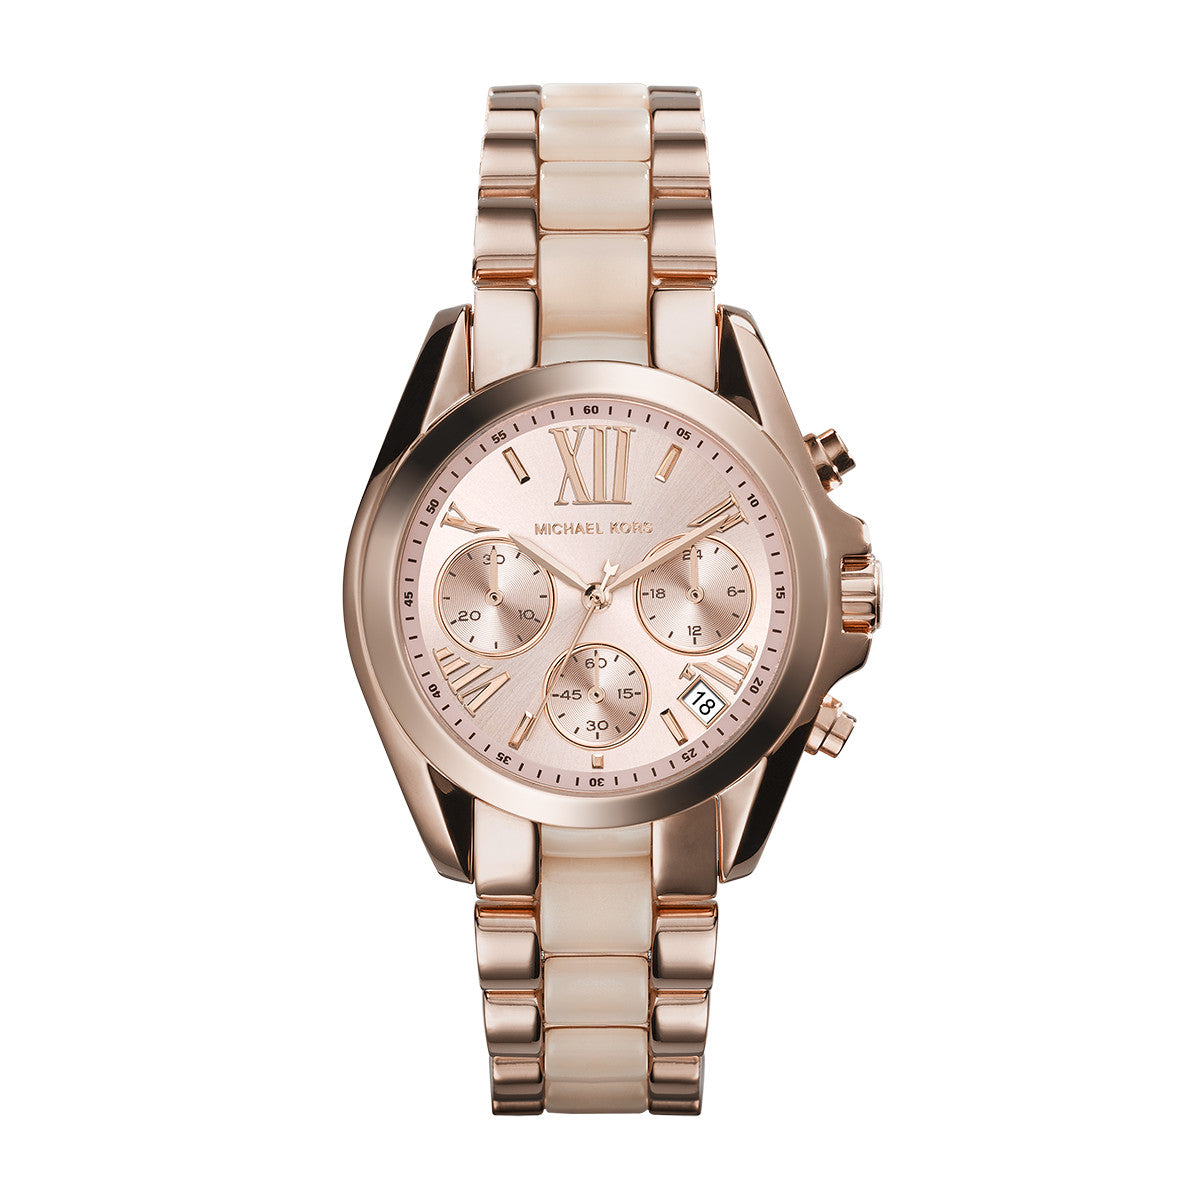 236c1dbbd3a6 Mini Bradshaw Blush and Rose Gold-Tone Stainless Steel Watch – Little  Switzerland